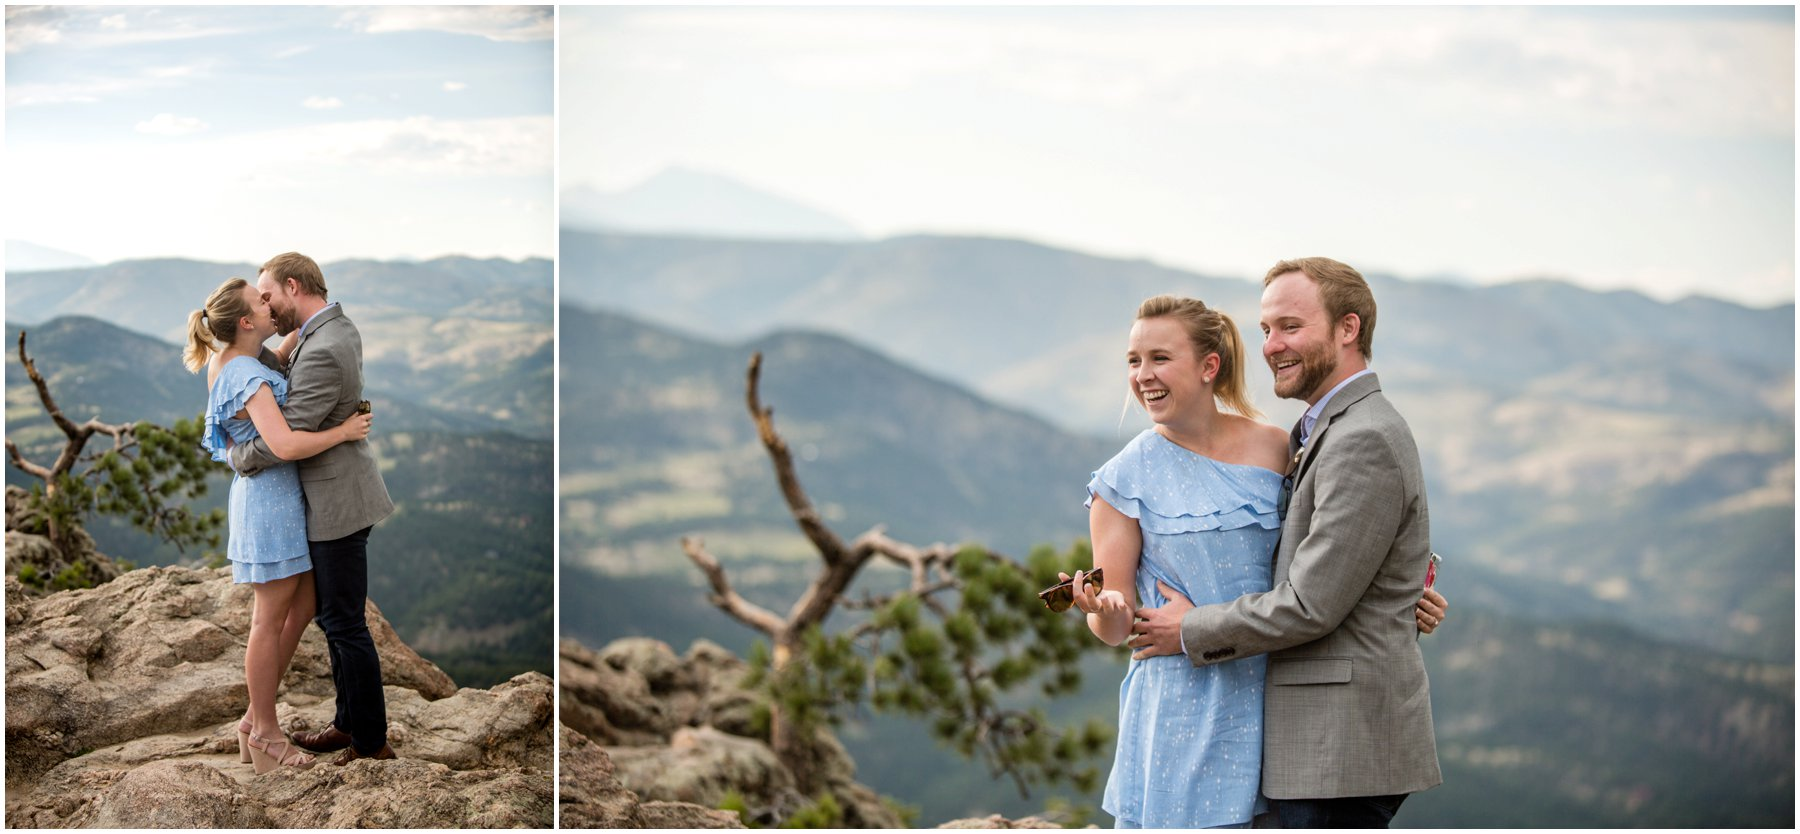 Popping the question mountain